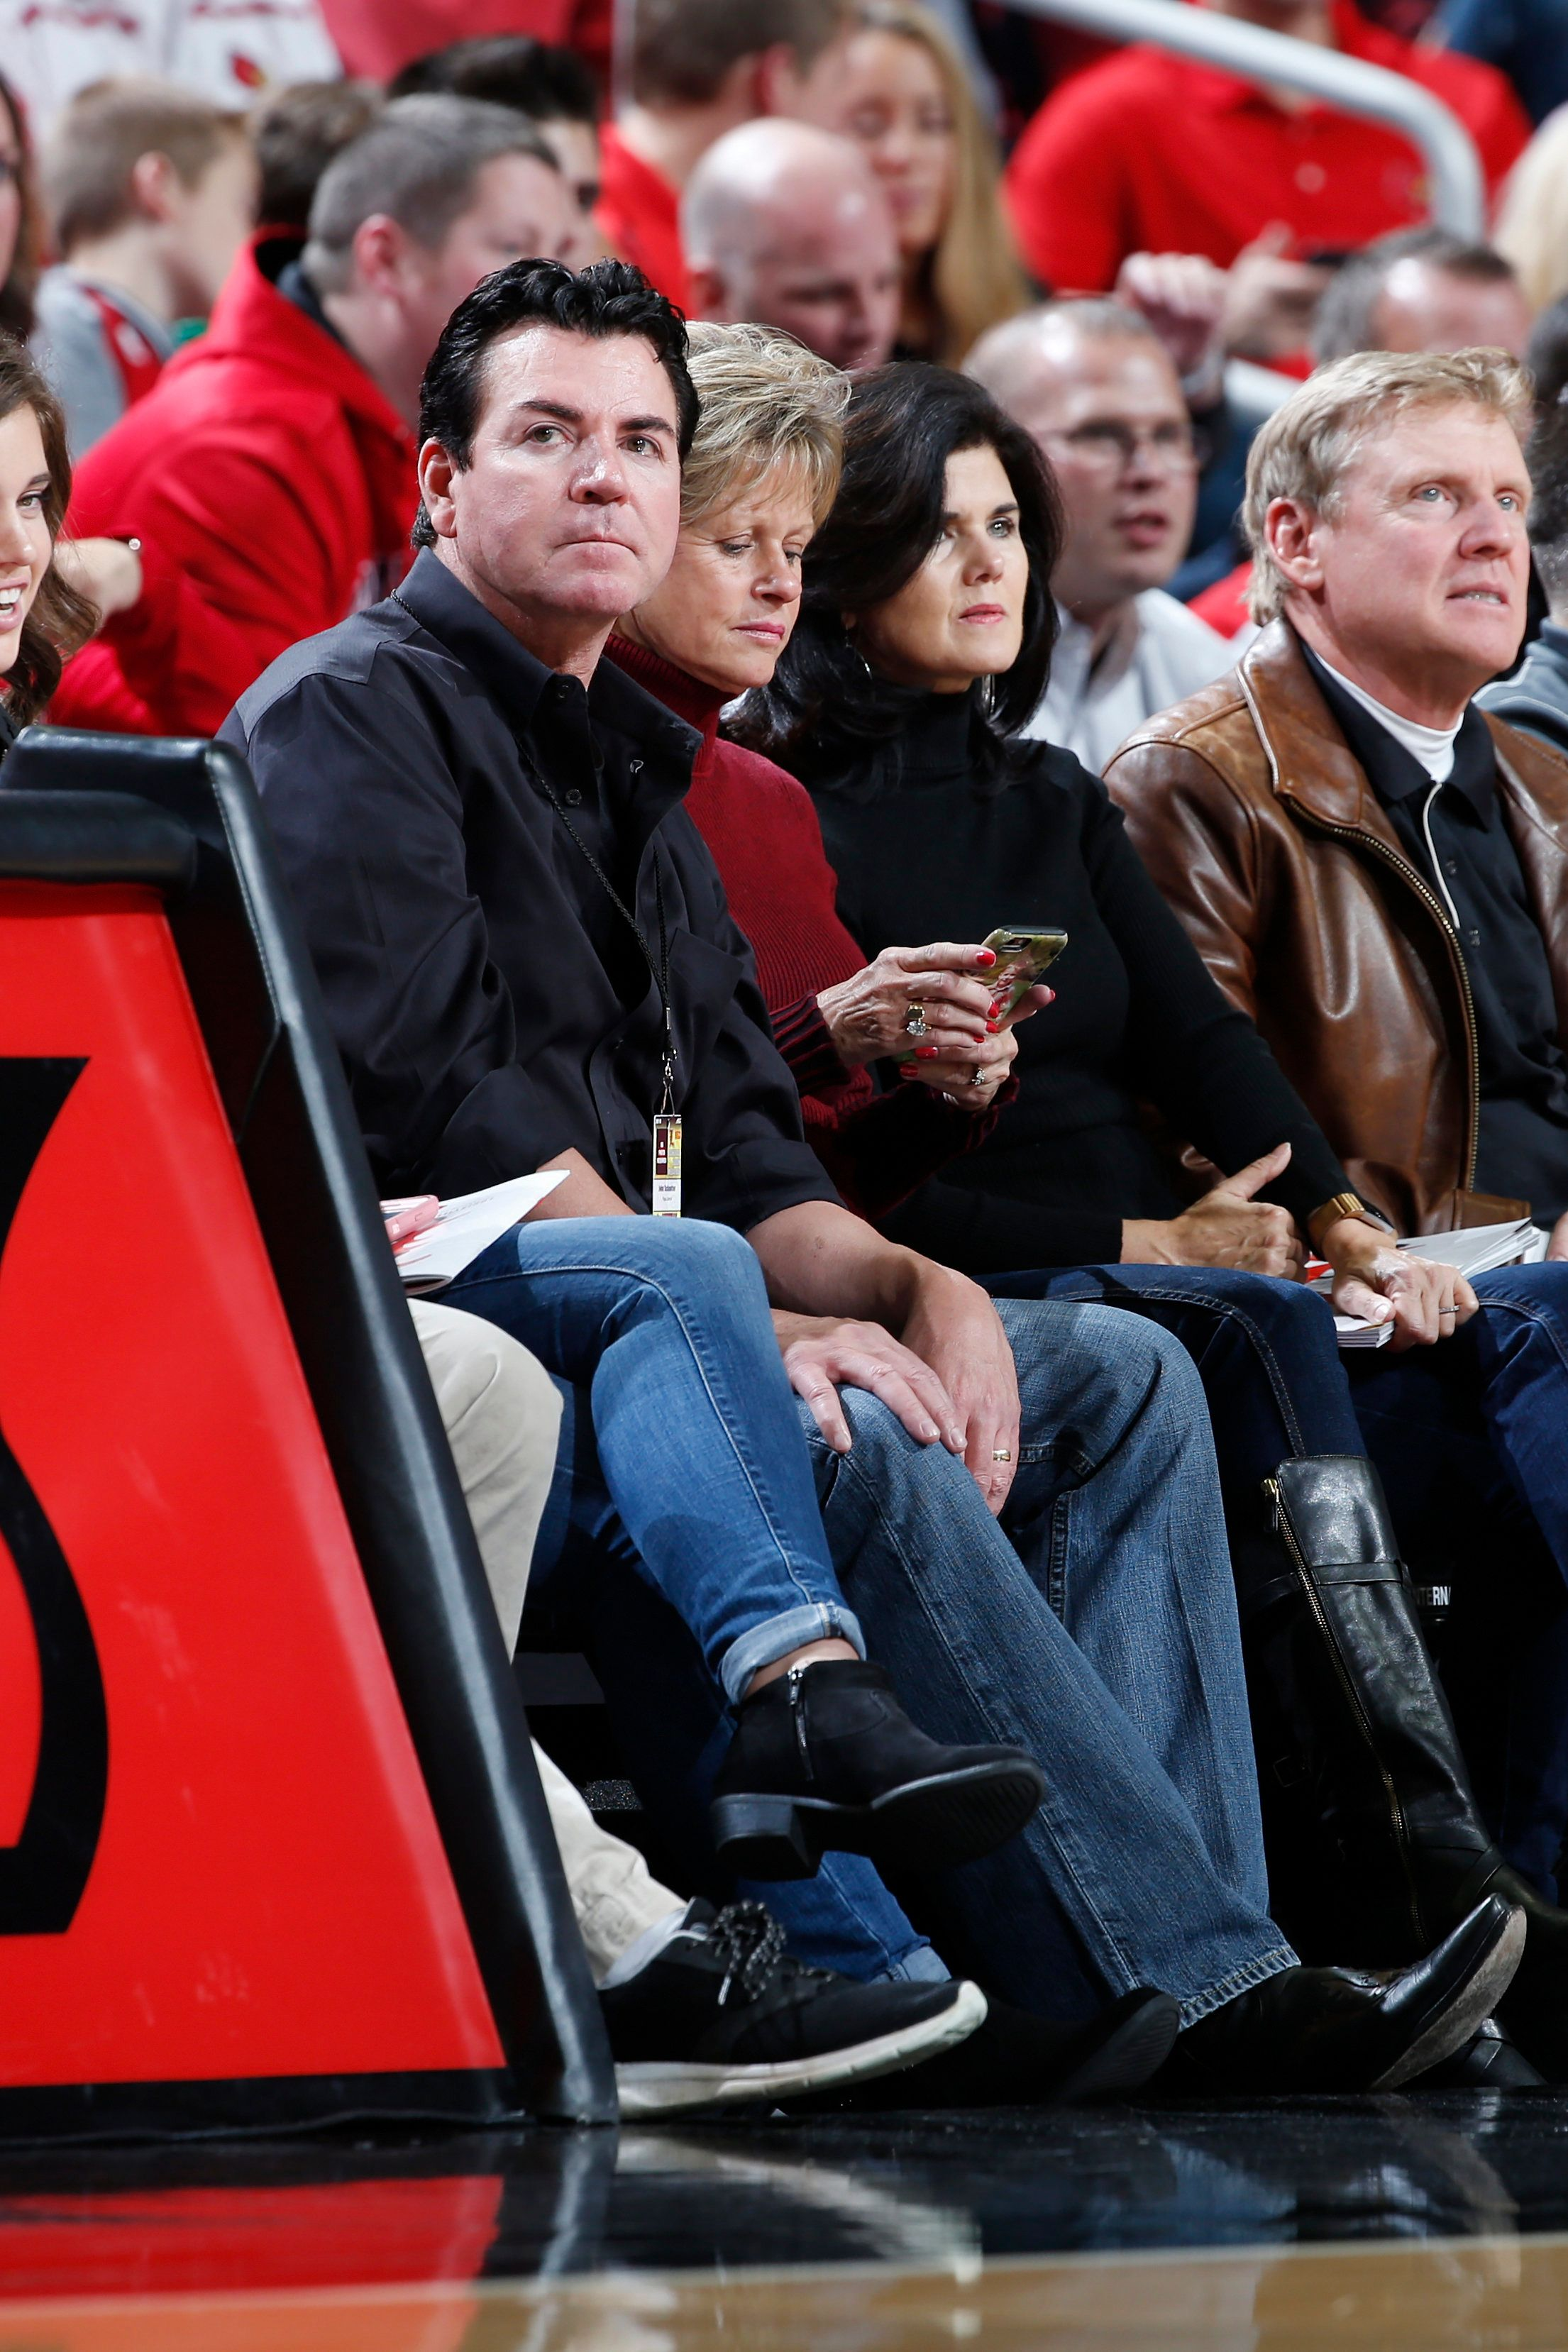 LOUISVILLE, KY - NOVEMBER 17: Papa John's Pizza CEO John Schnatter sits courtside during a game between the Omaha Mavericks and Louisville Cardinals at KFC YUM! Center on November 17, 2017 in Louisville, Kentucky. Louisville won 87-78. (Photo by Joe Robbins/Getty Images)